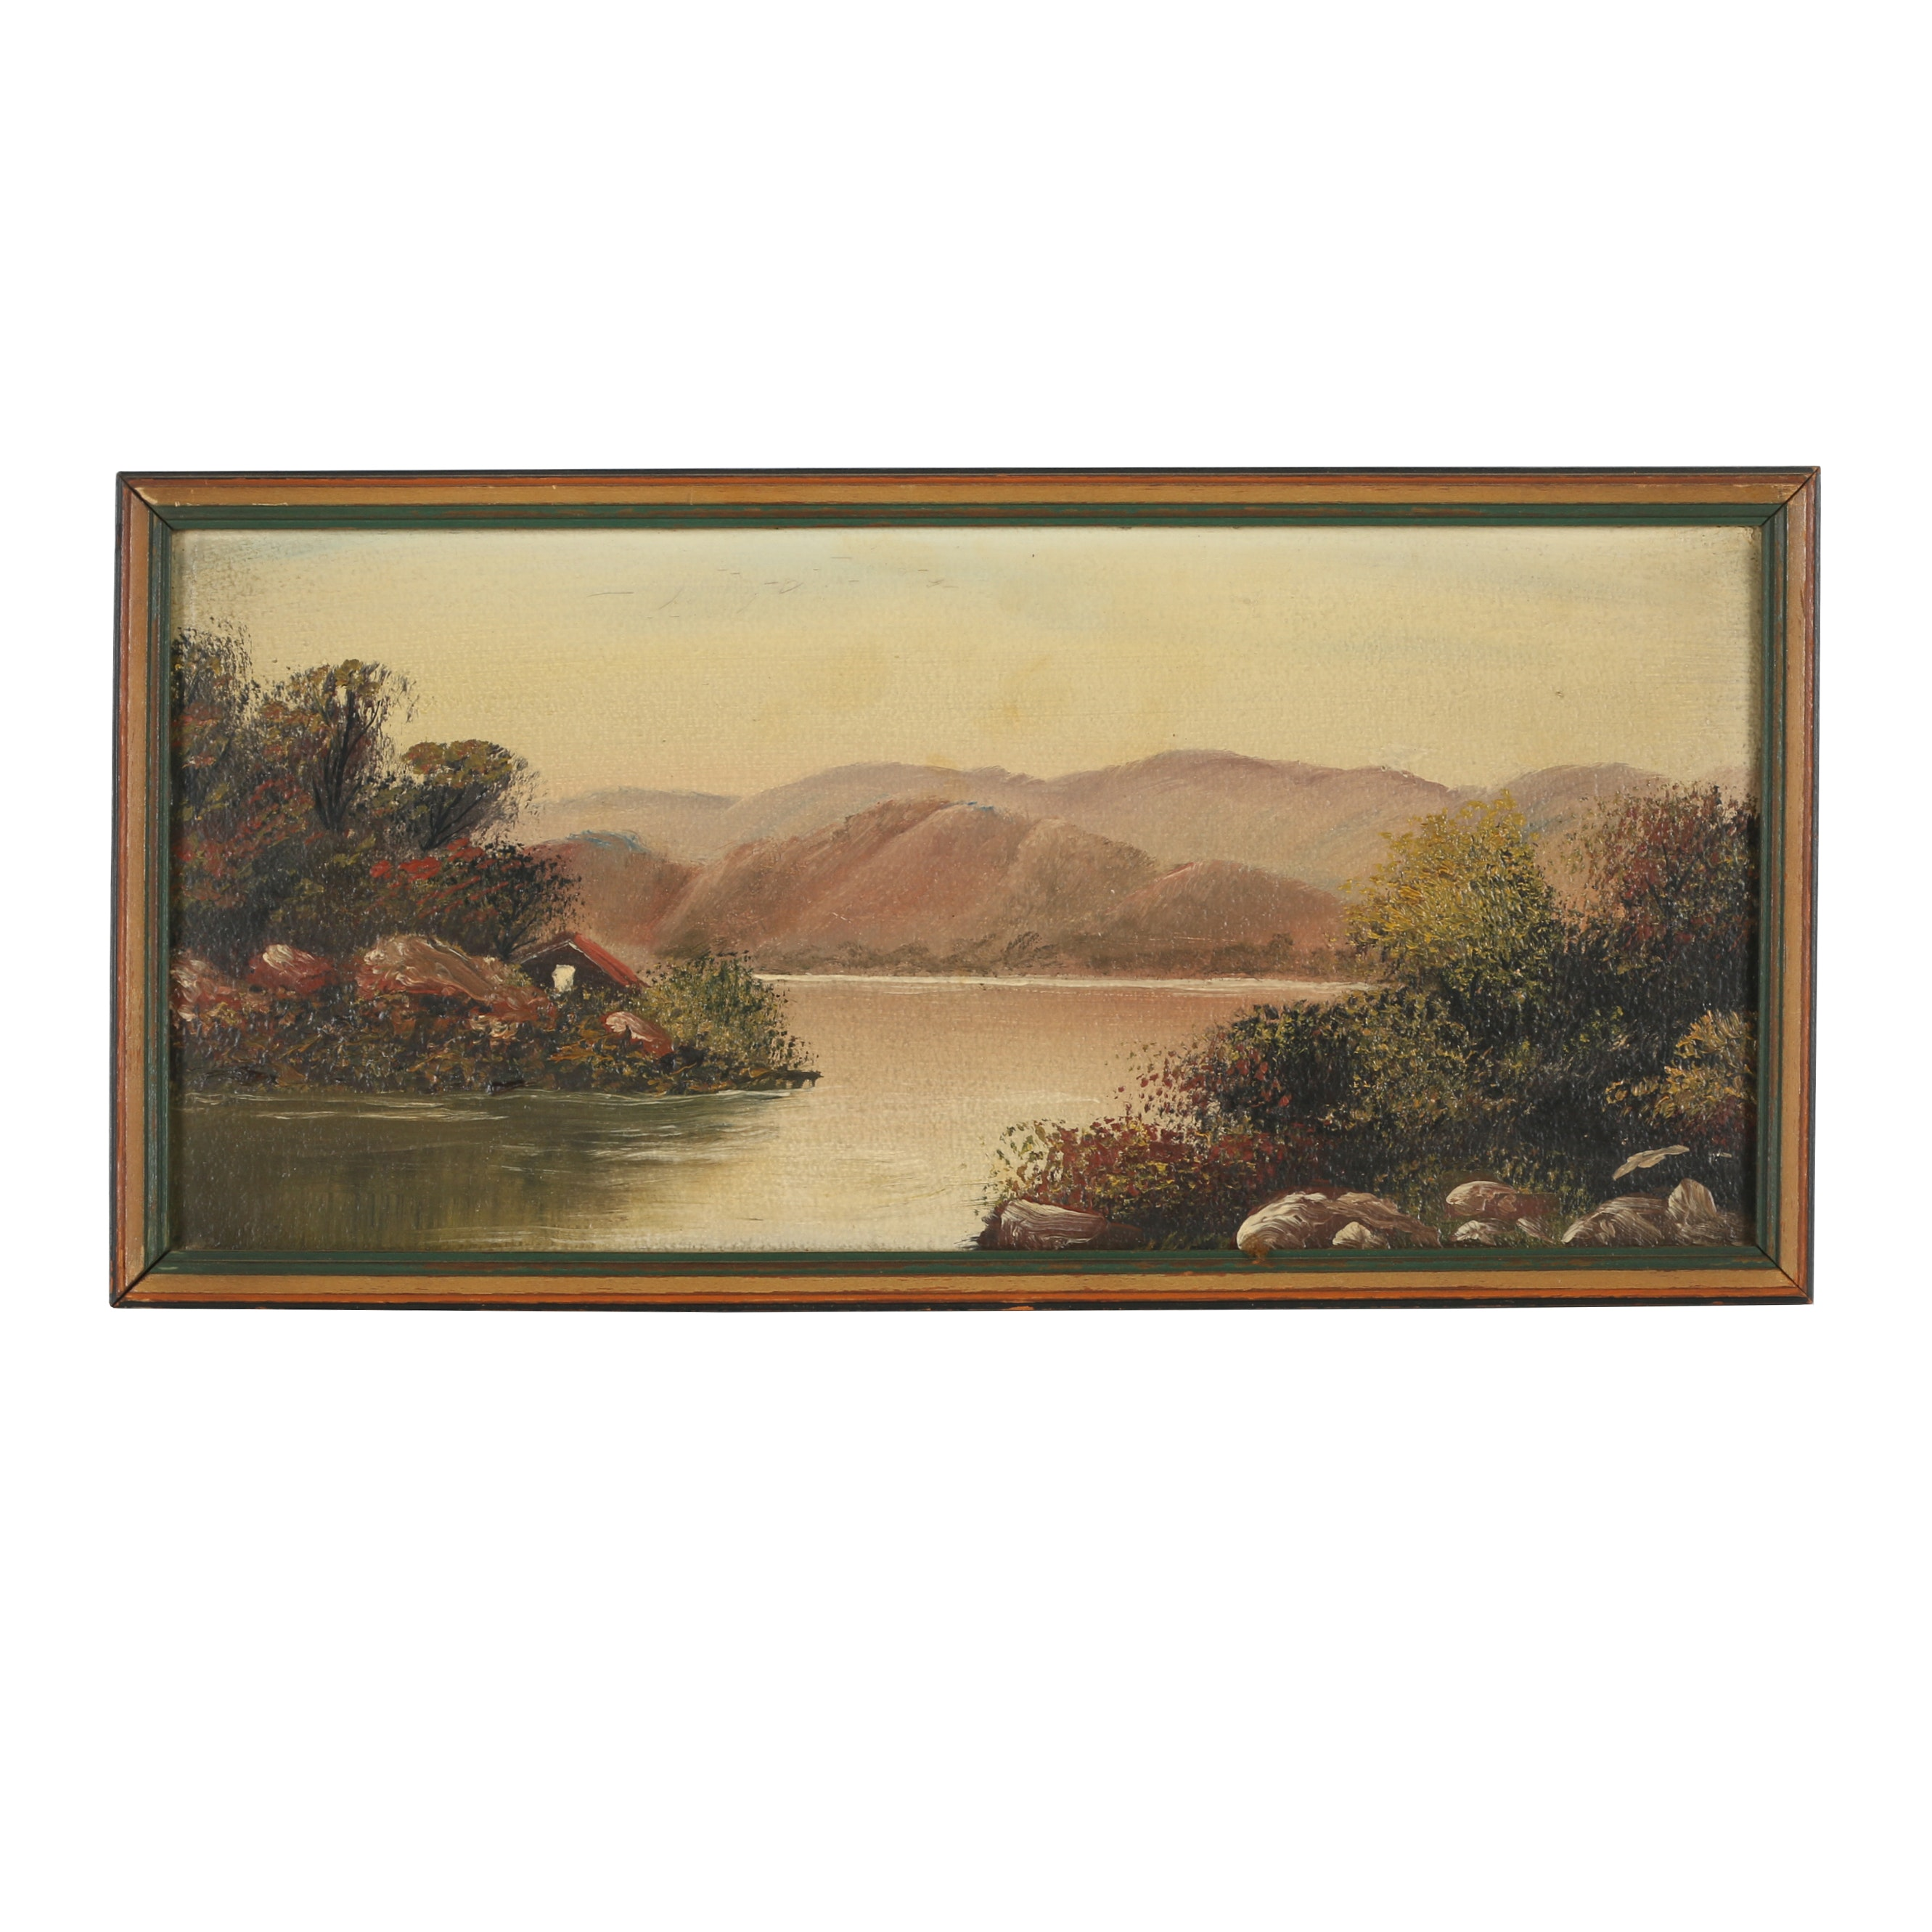 Oil Painting on Board of a Scenic River